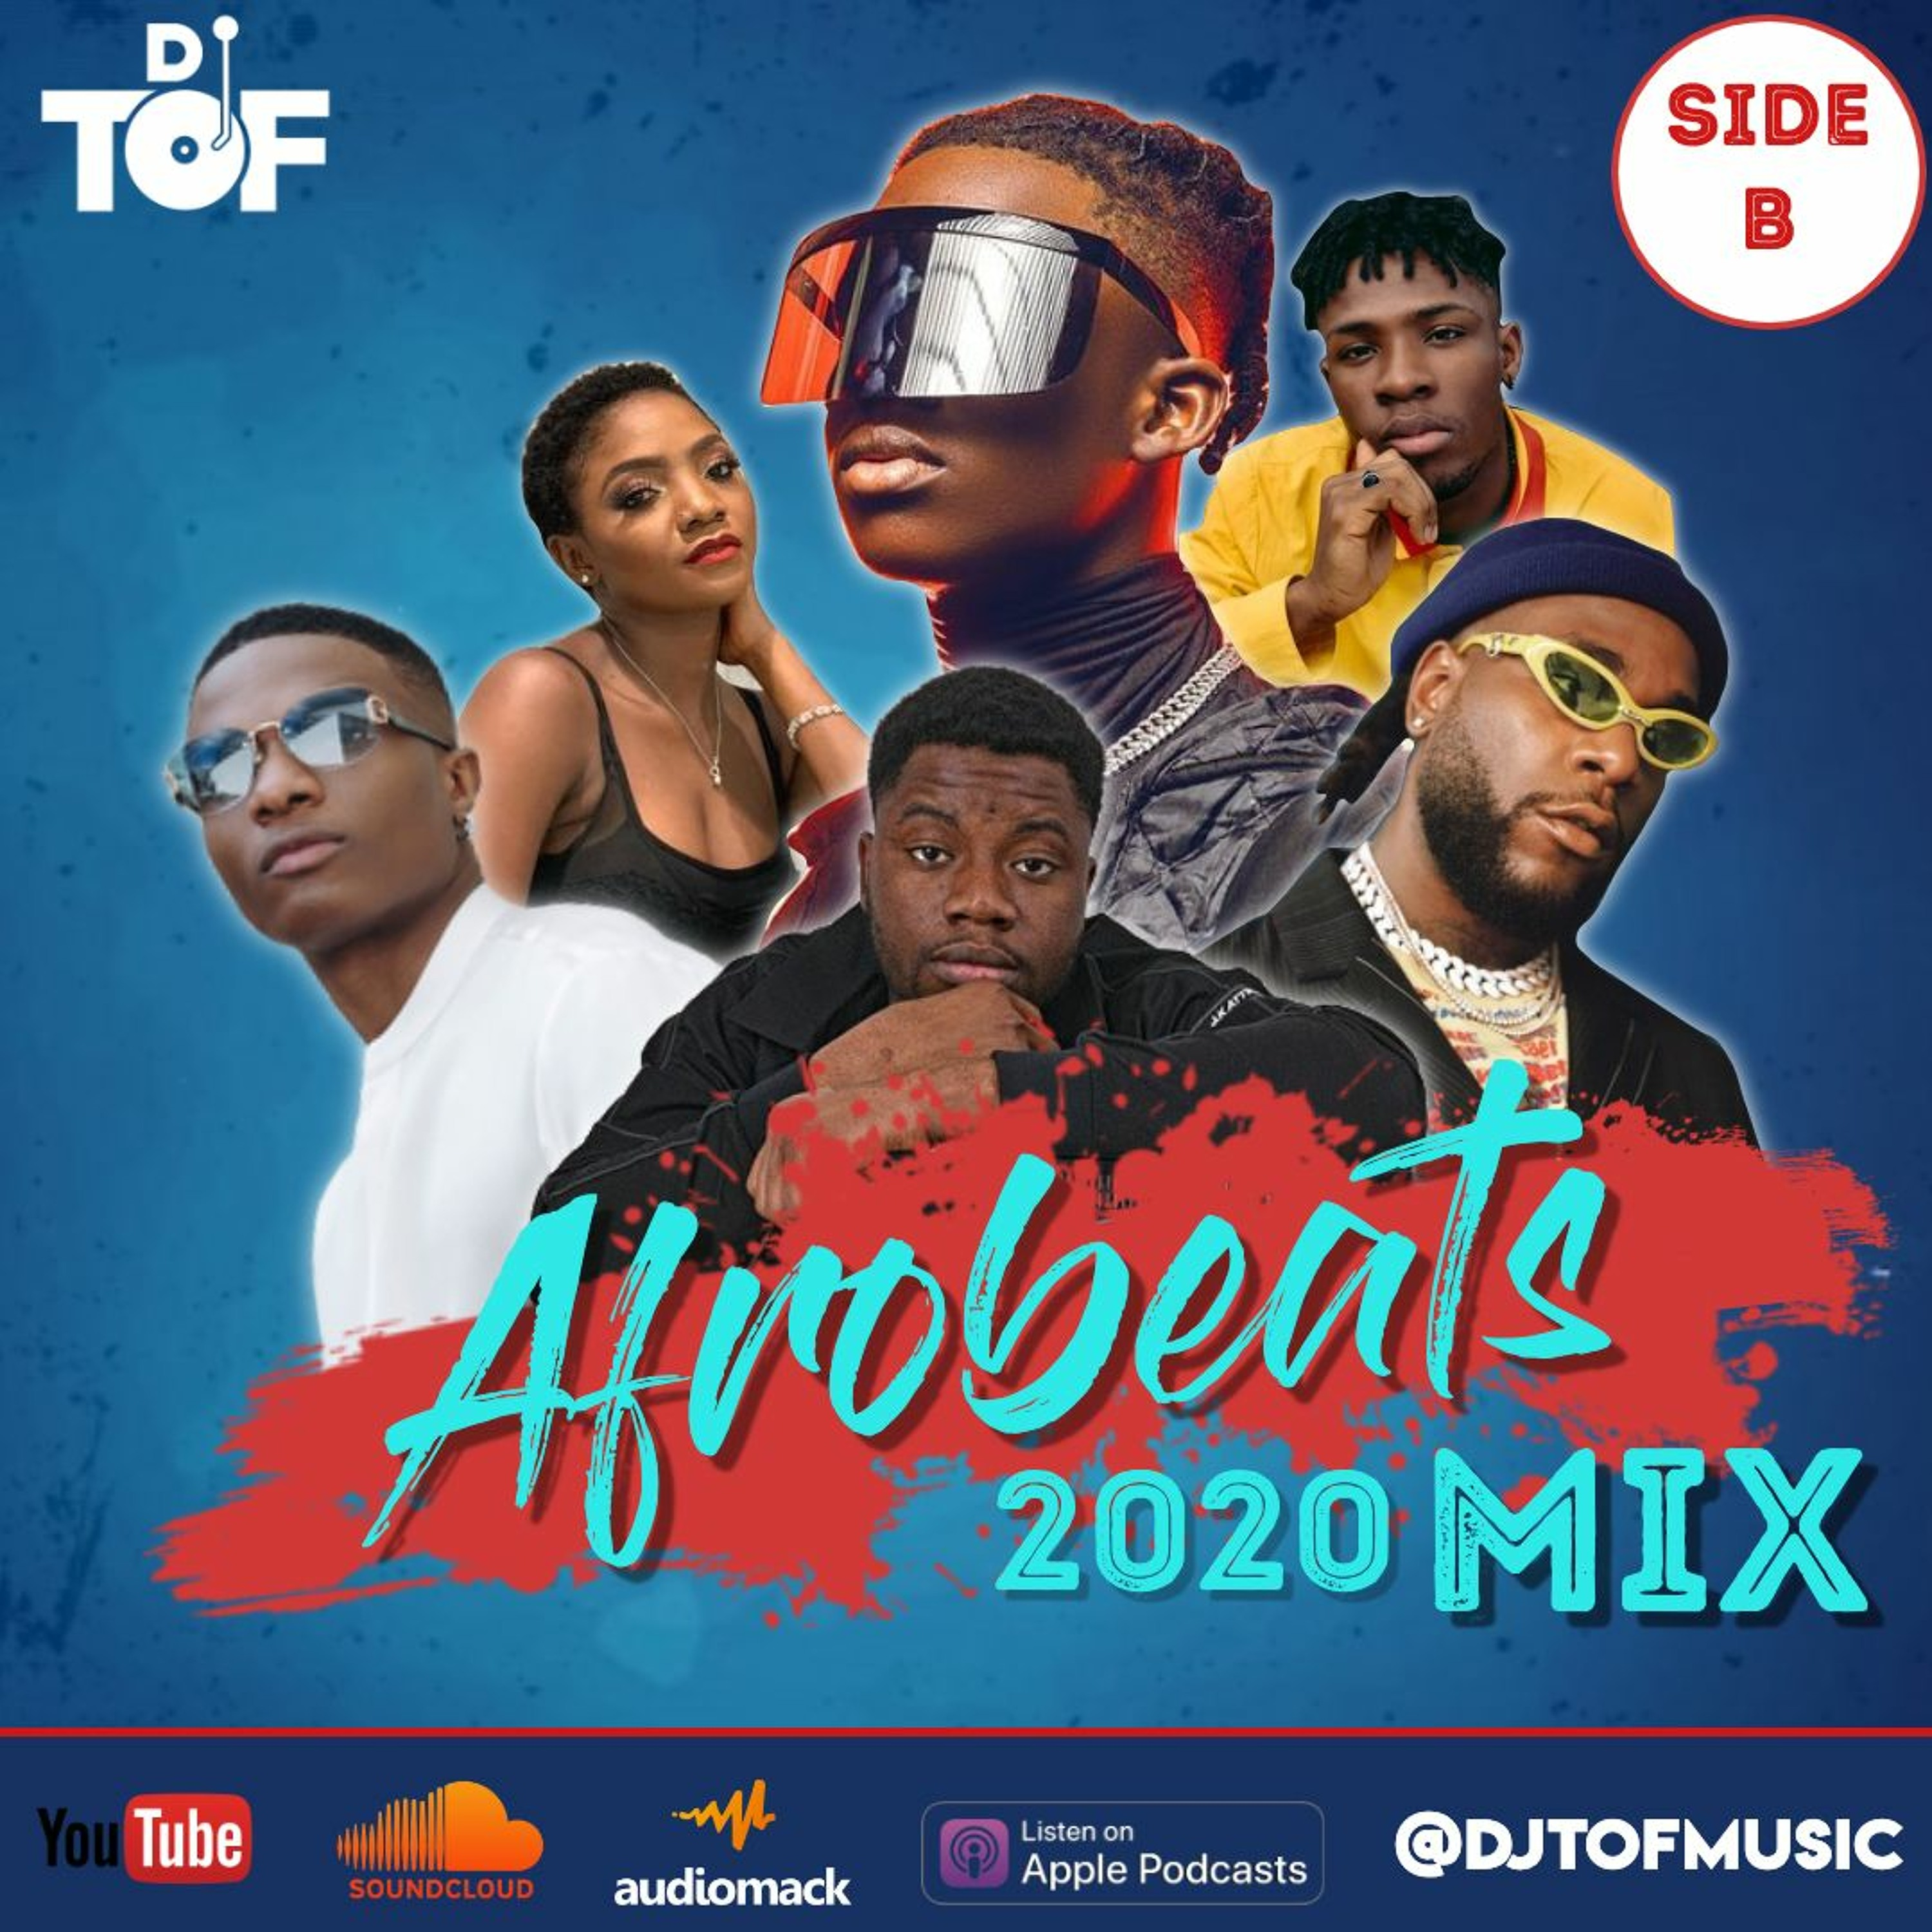 2020 Afrobeats Mix 2 - SIDE B